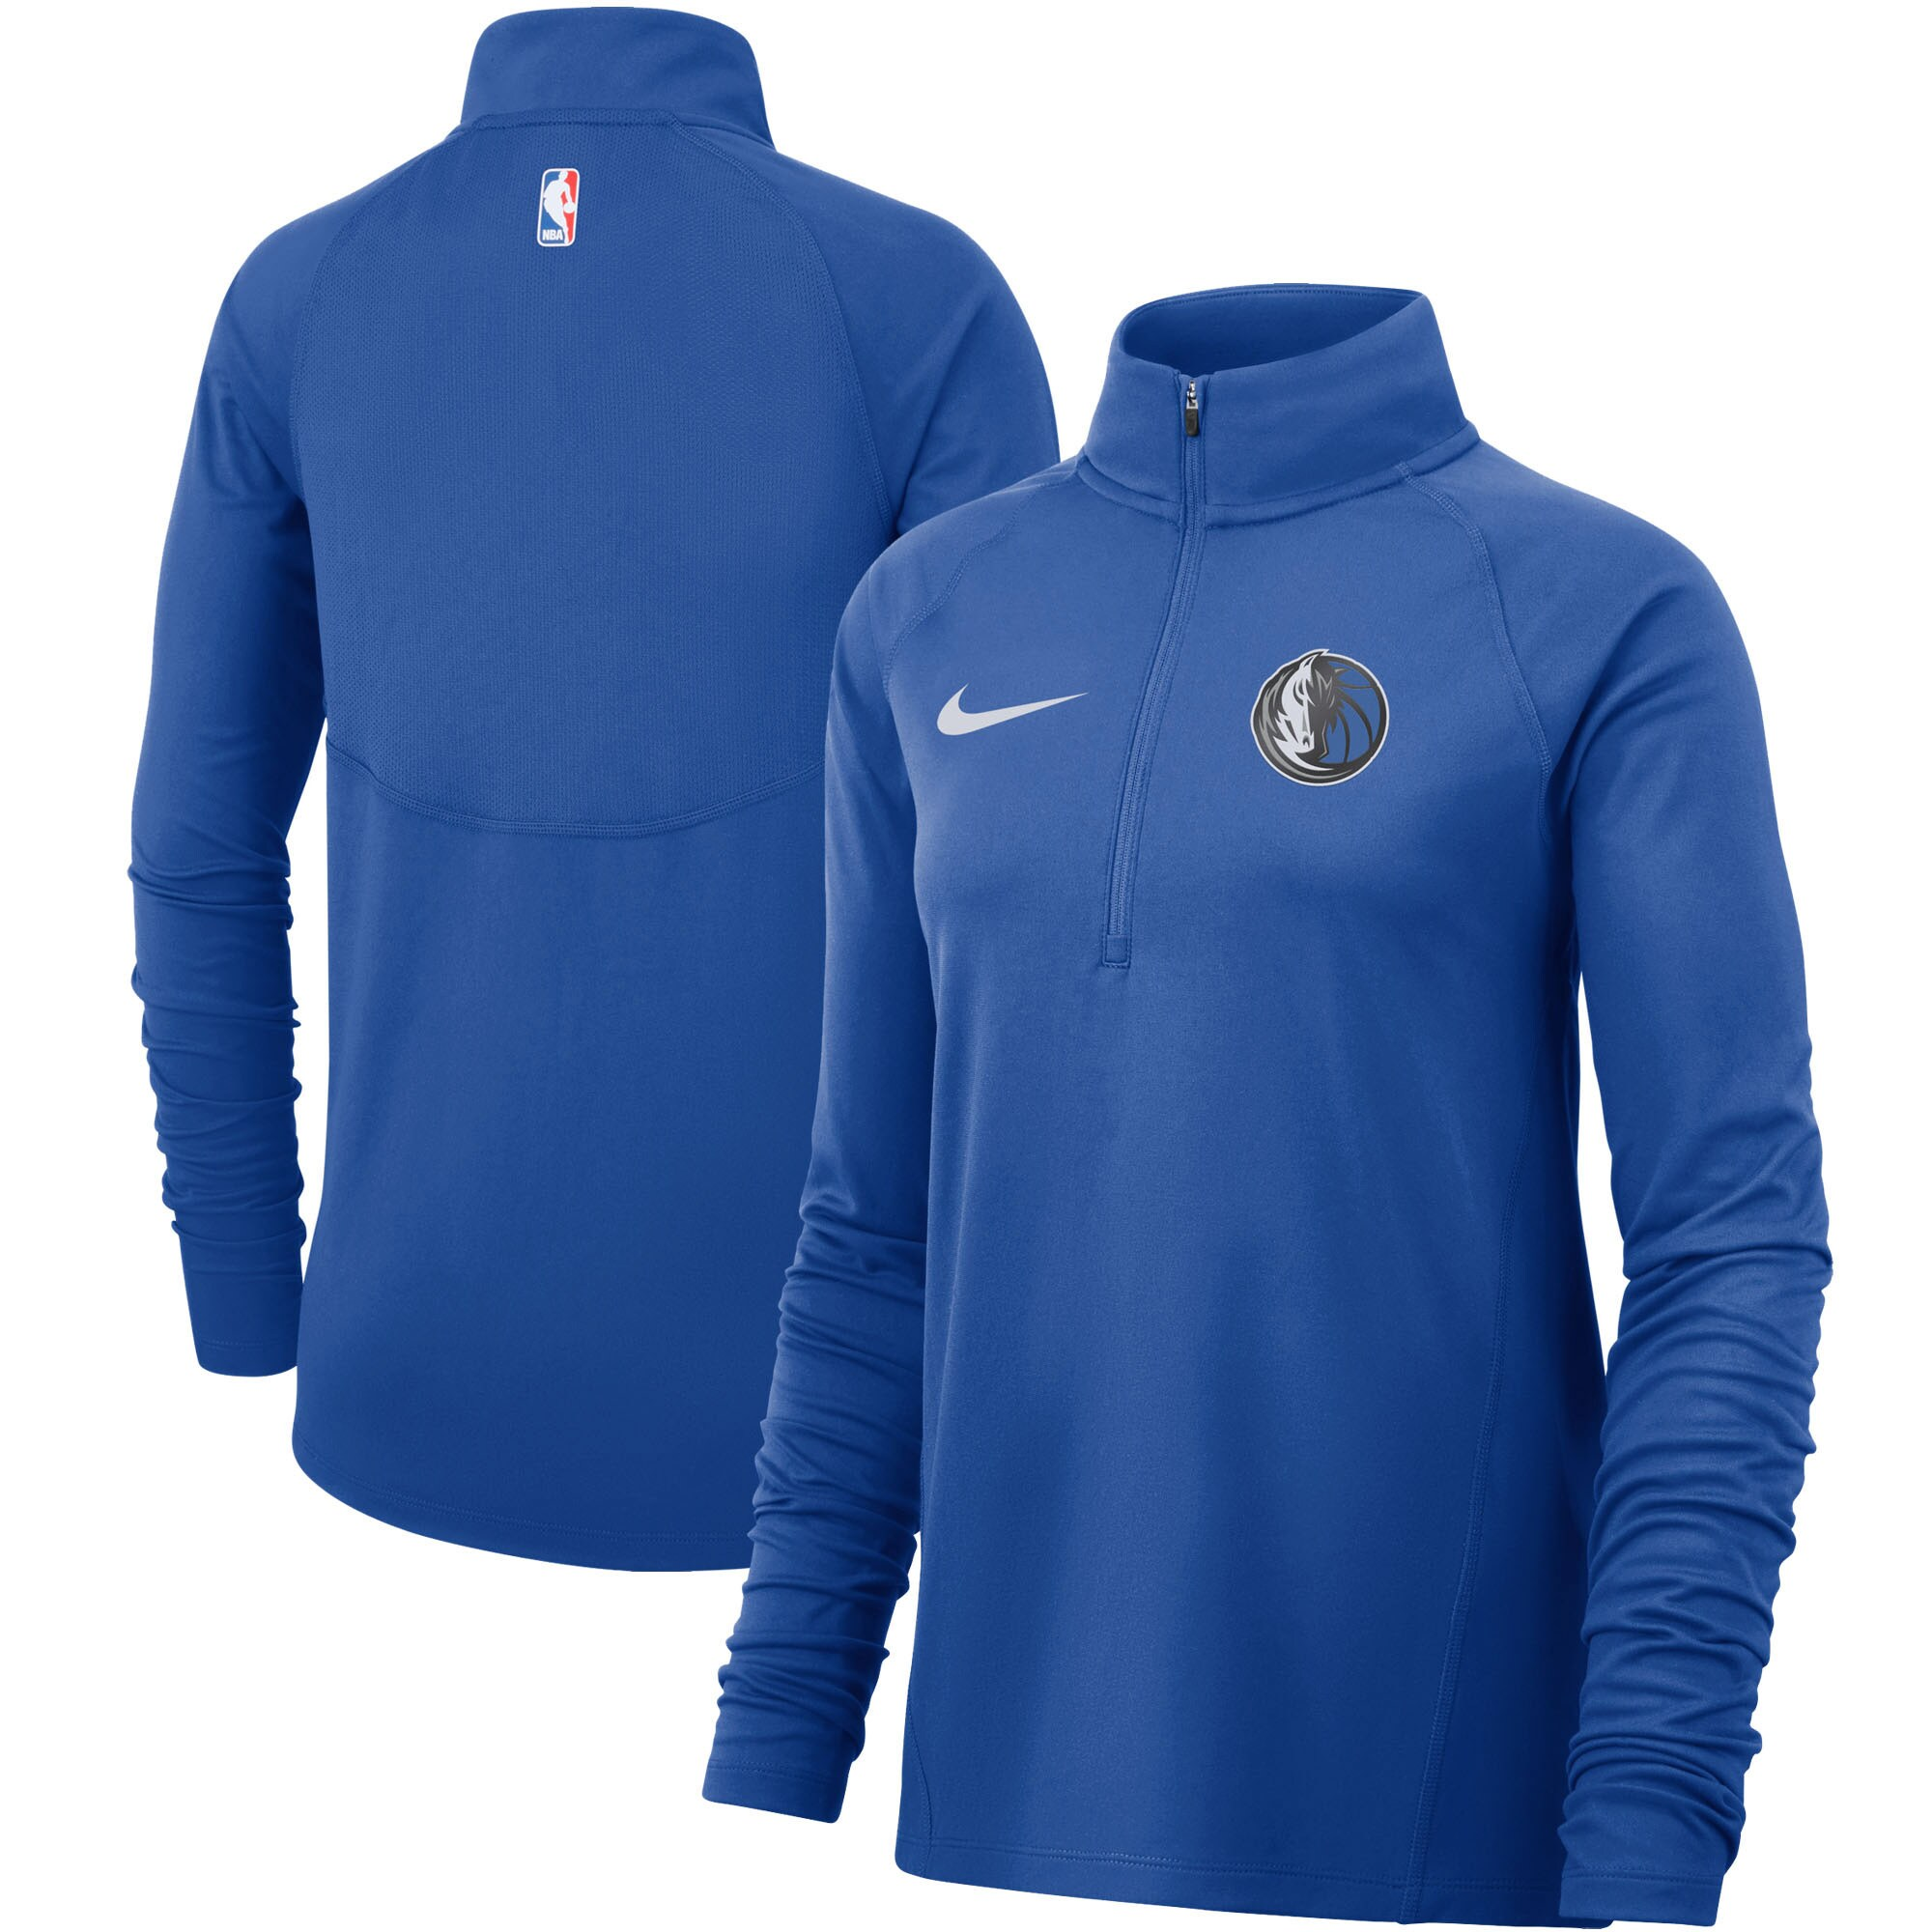 Dallas Mavericks Nike Women's Element Performance Raglan Sleeve Half-Zip Pullover Jacket - Blue